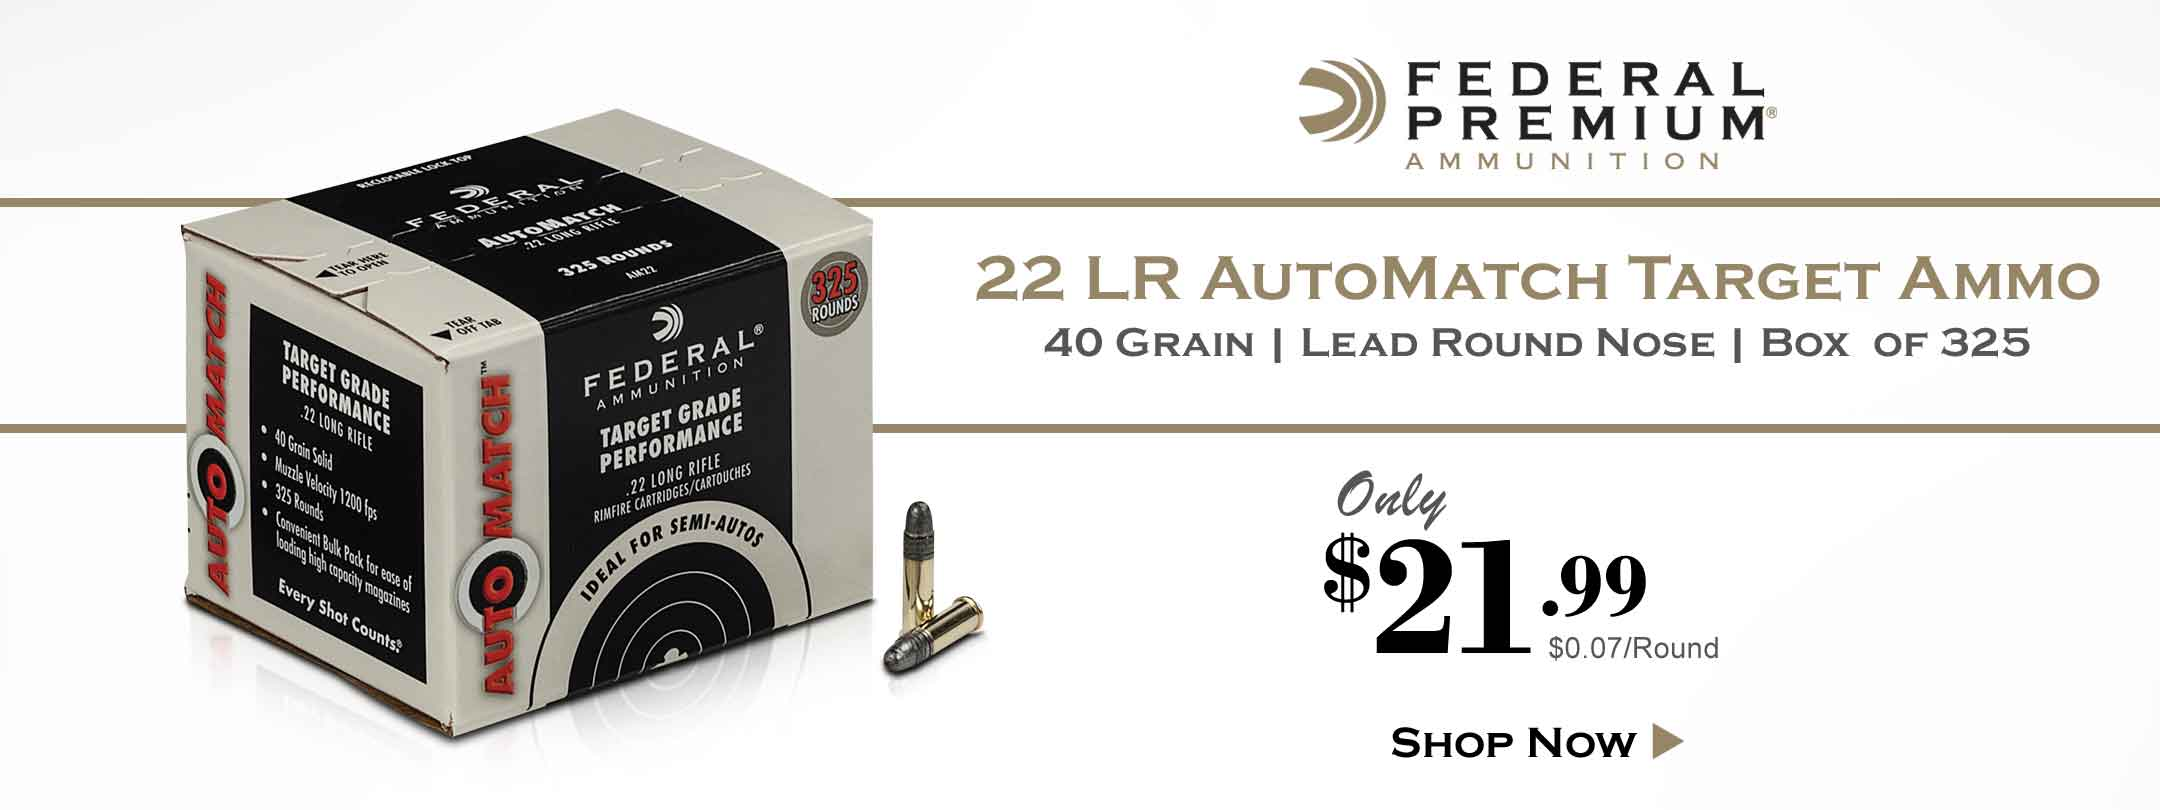 Now Available - Federal 22 LR AutoMatch Target Ammo